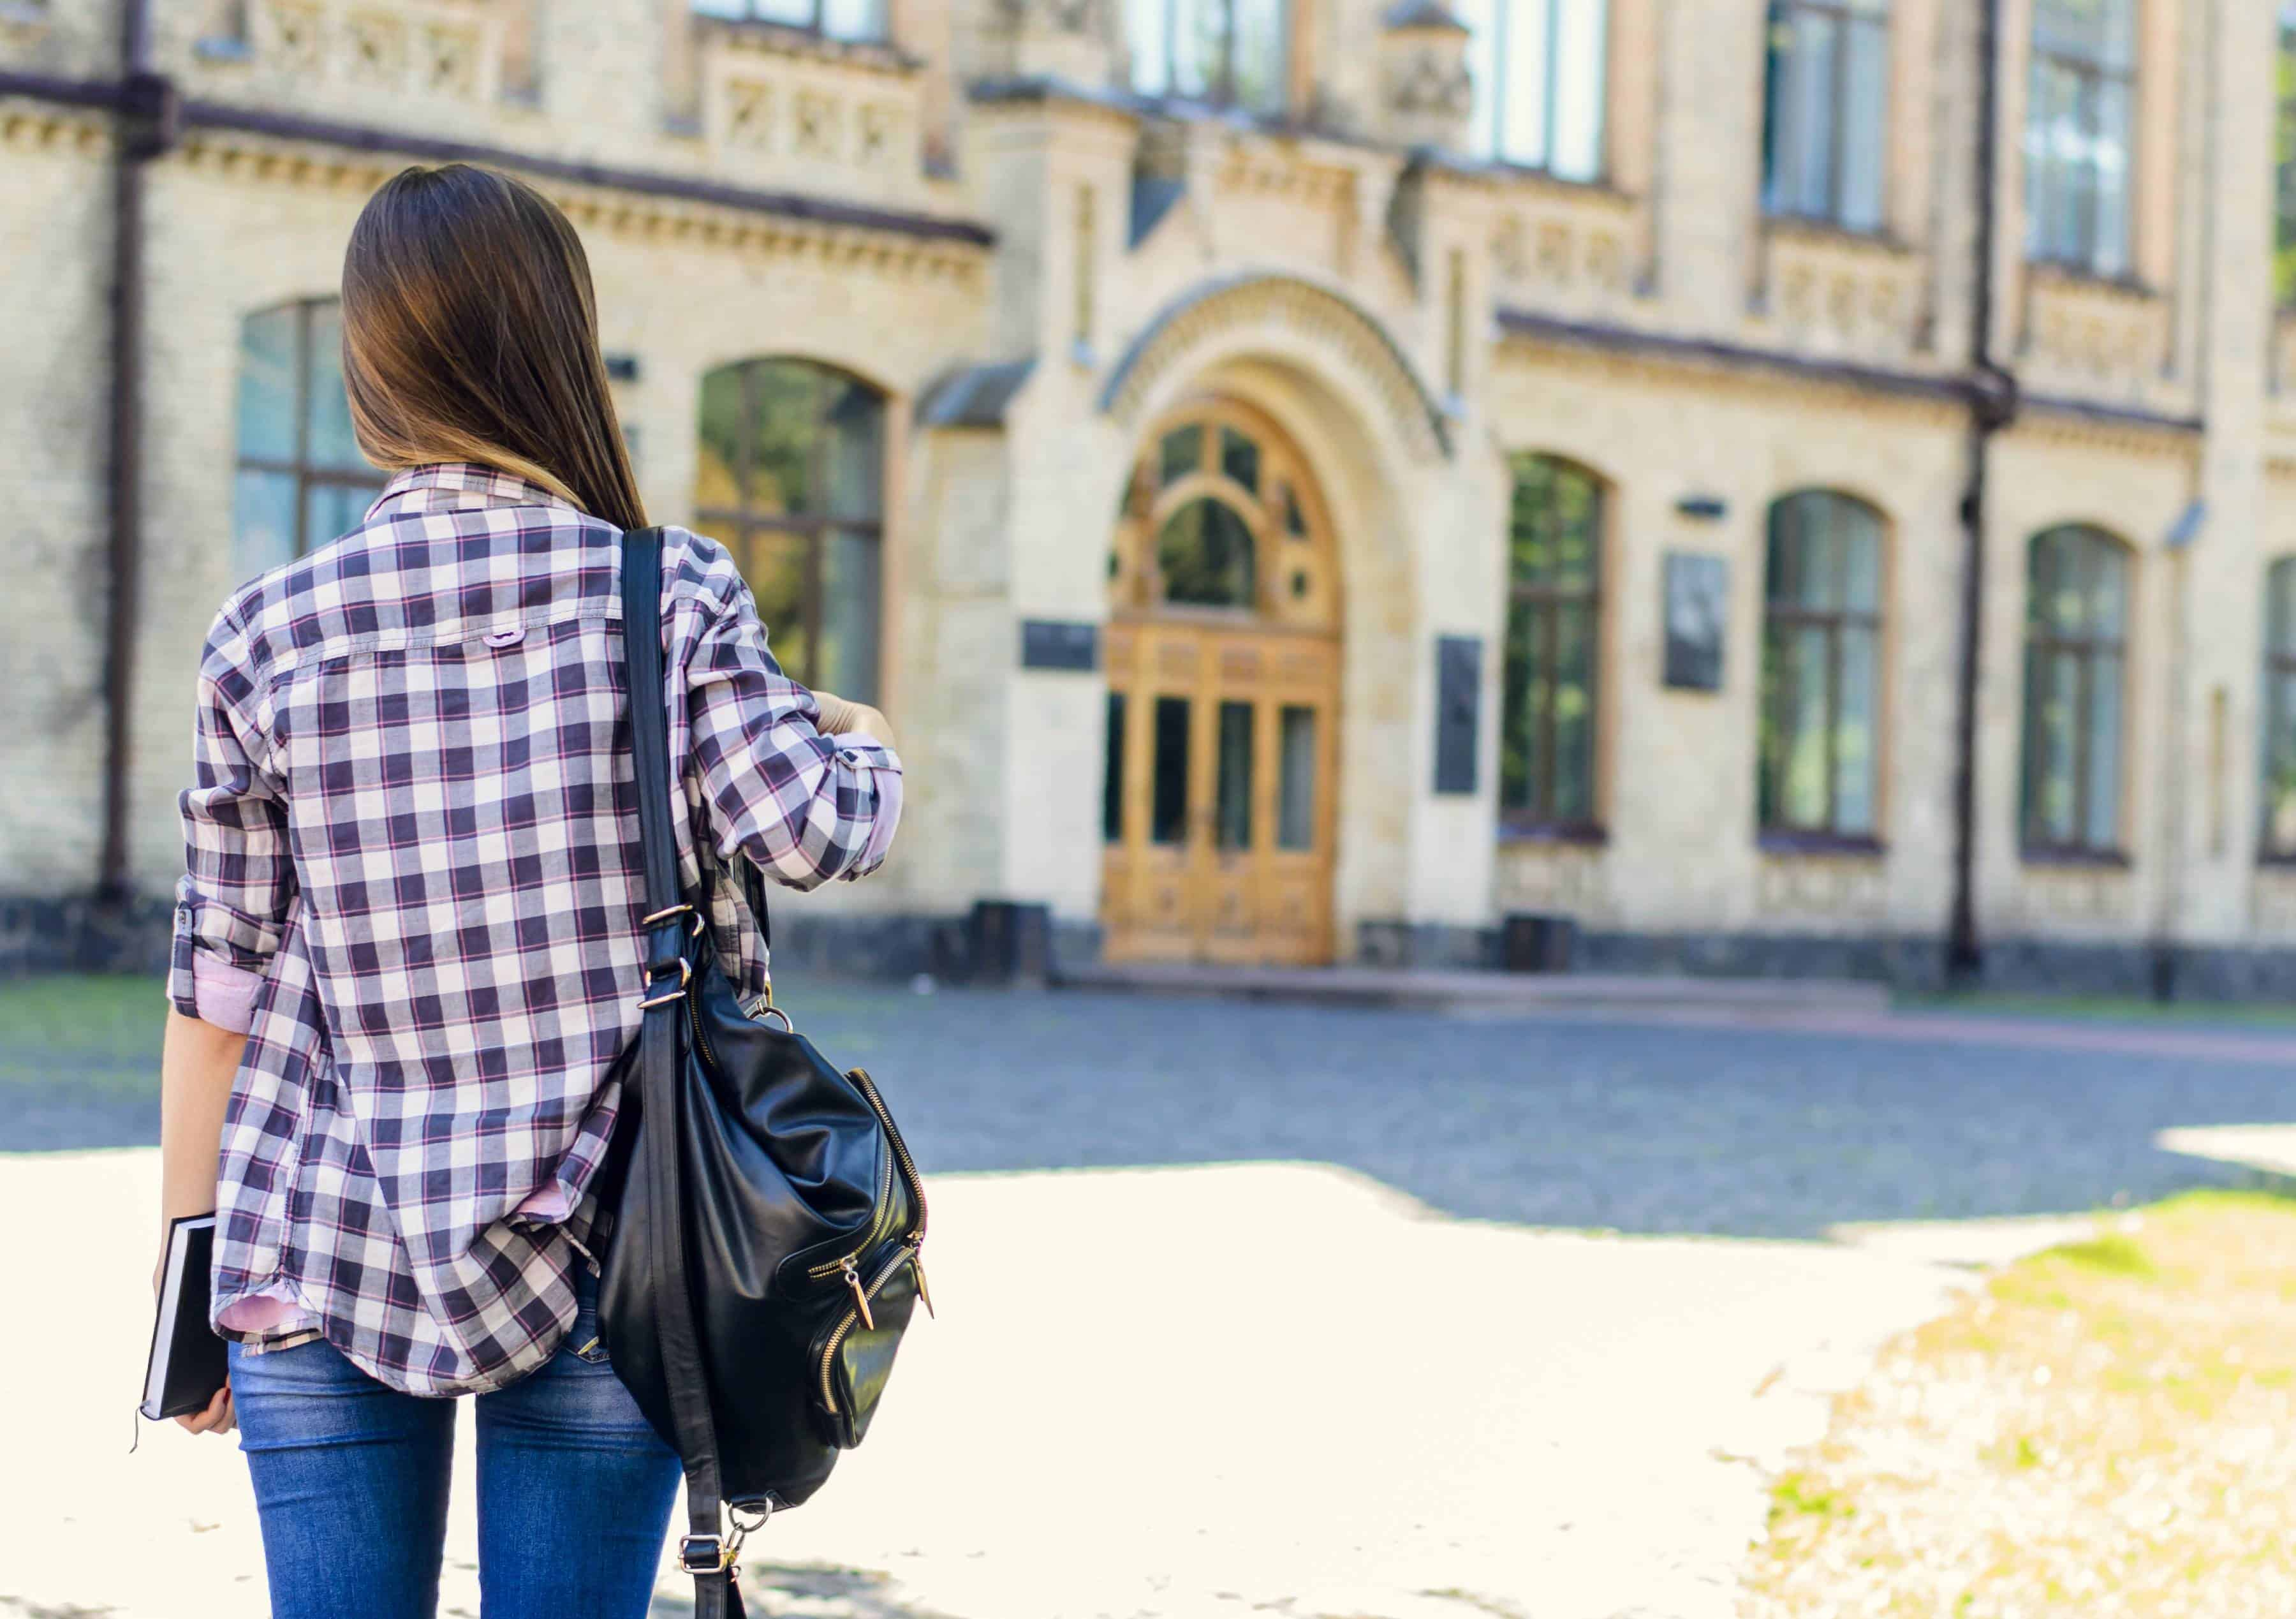 young woman walking toward college building